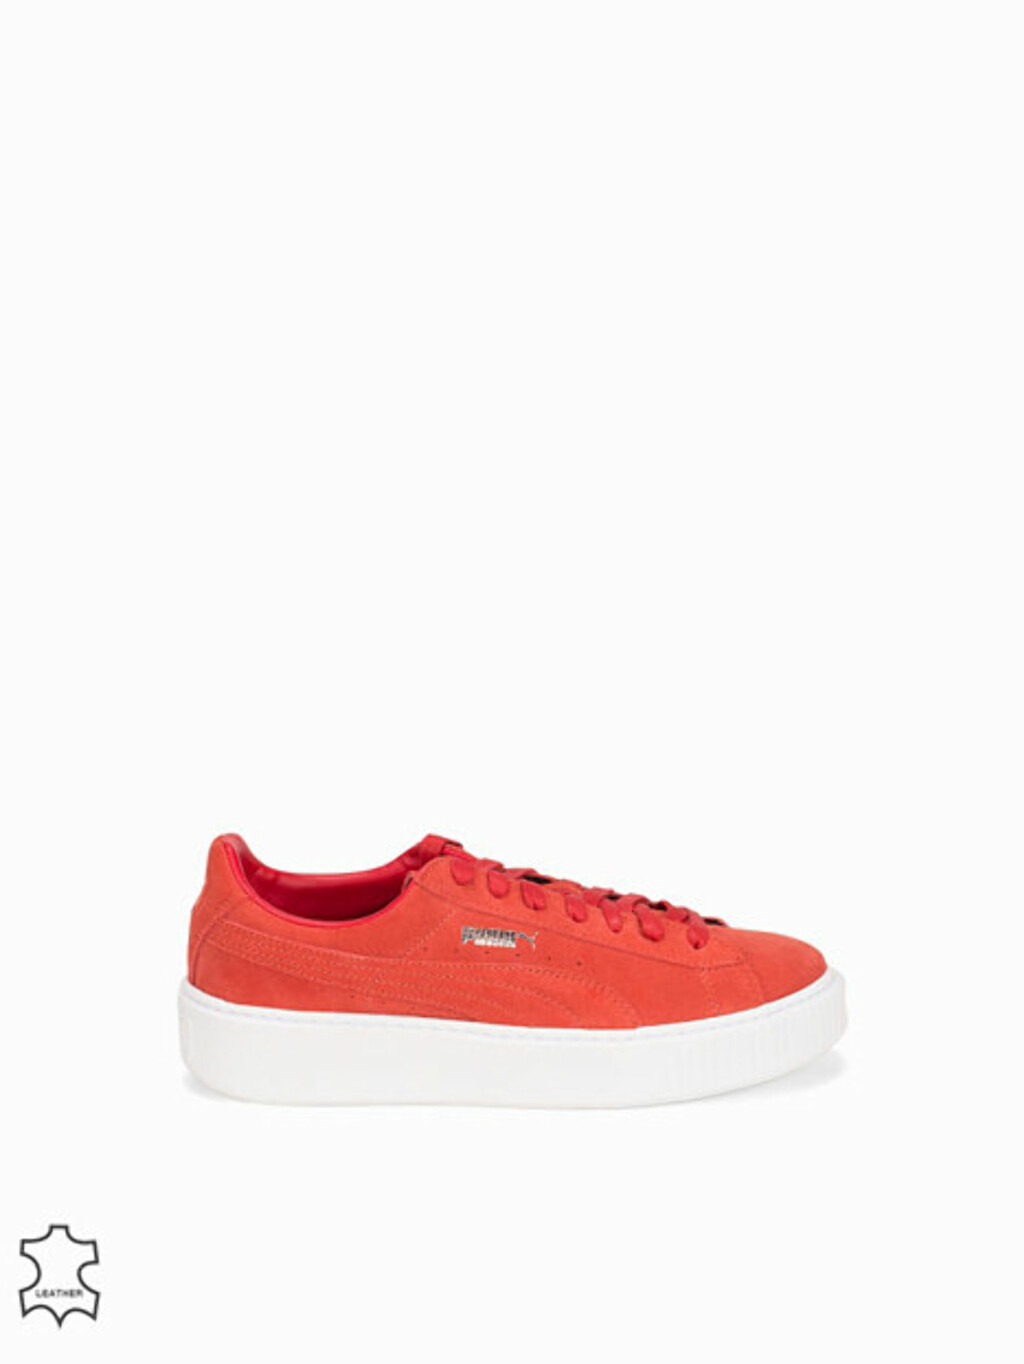 Sneakers fra Puma via Nelly.com | kr 1095